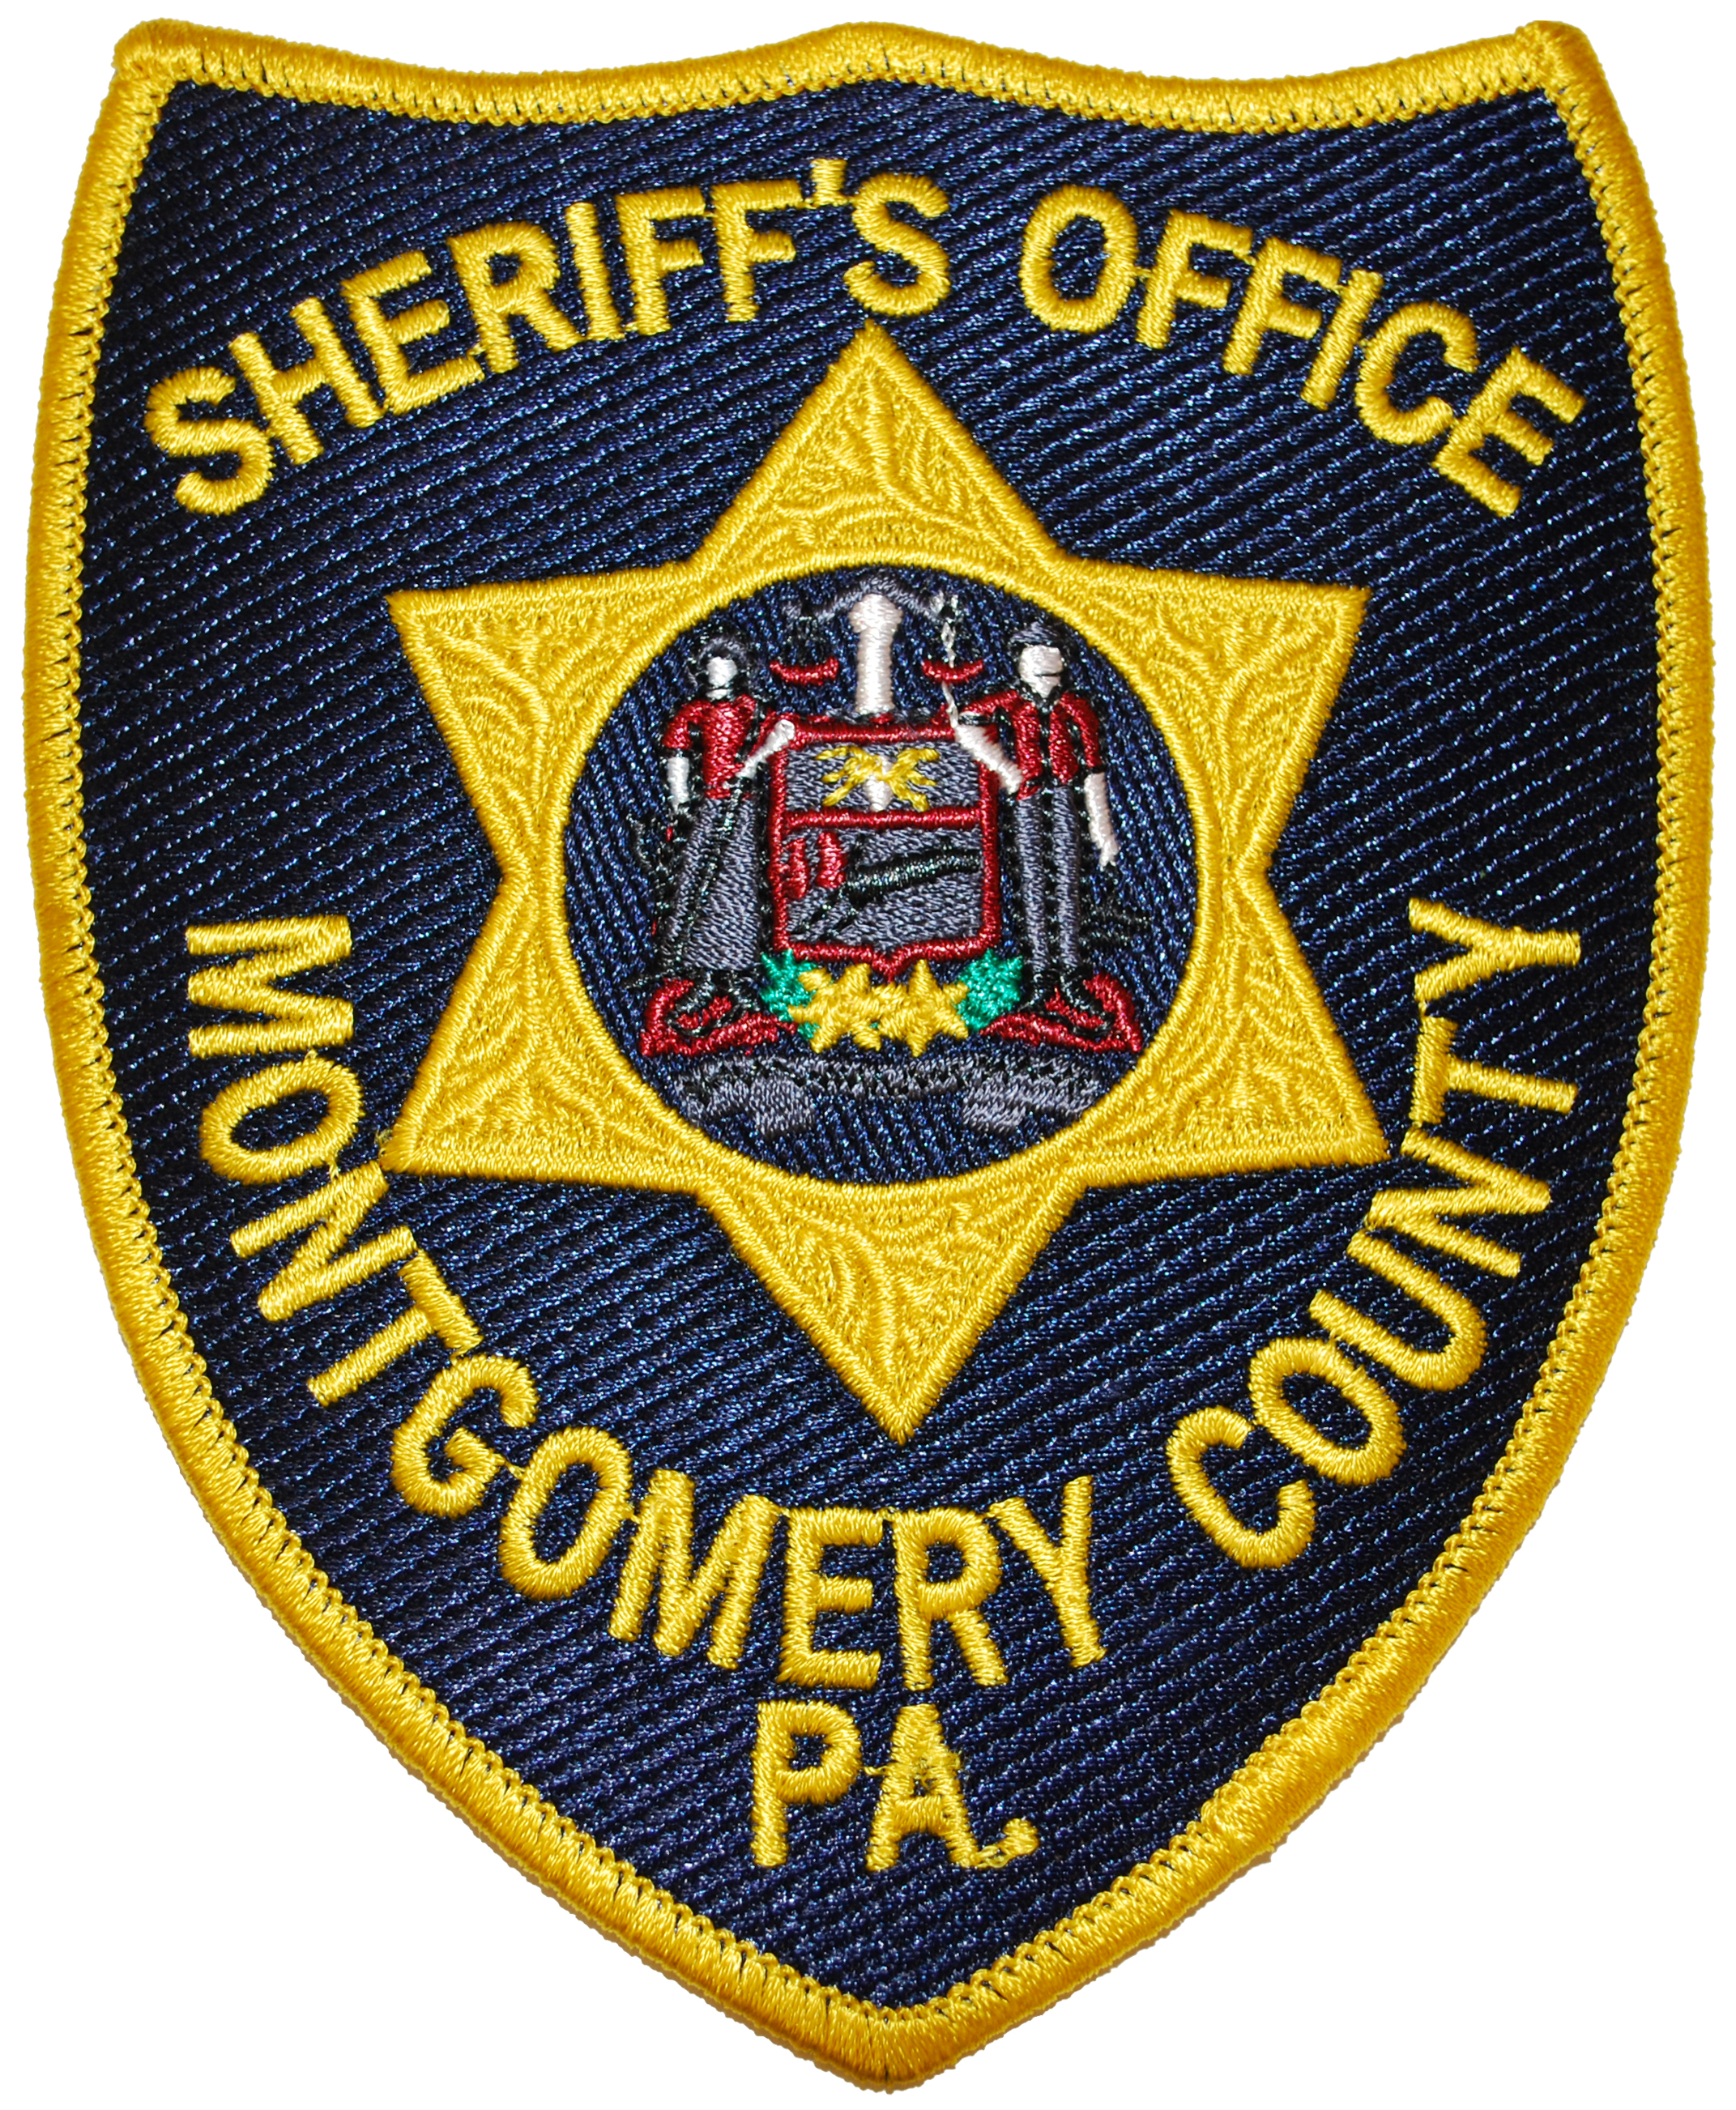 Montgomery County Sheriff's Office (Pennsylvania) - Wikipedia